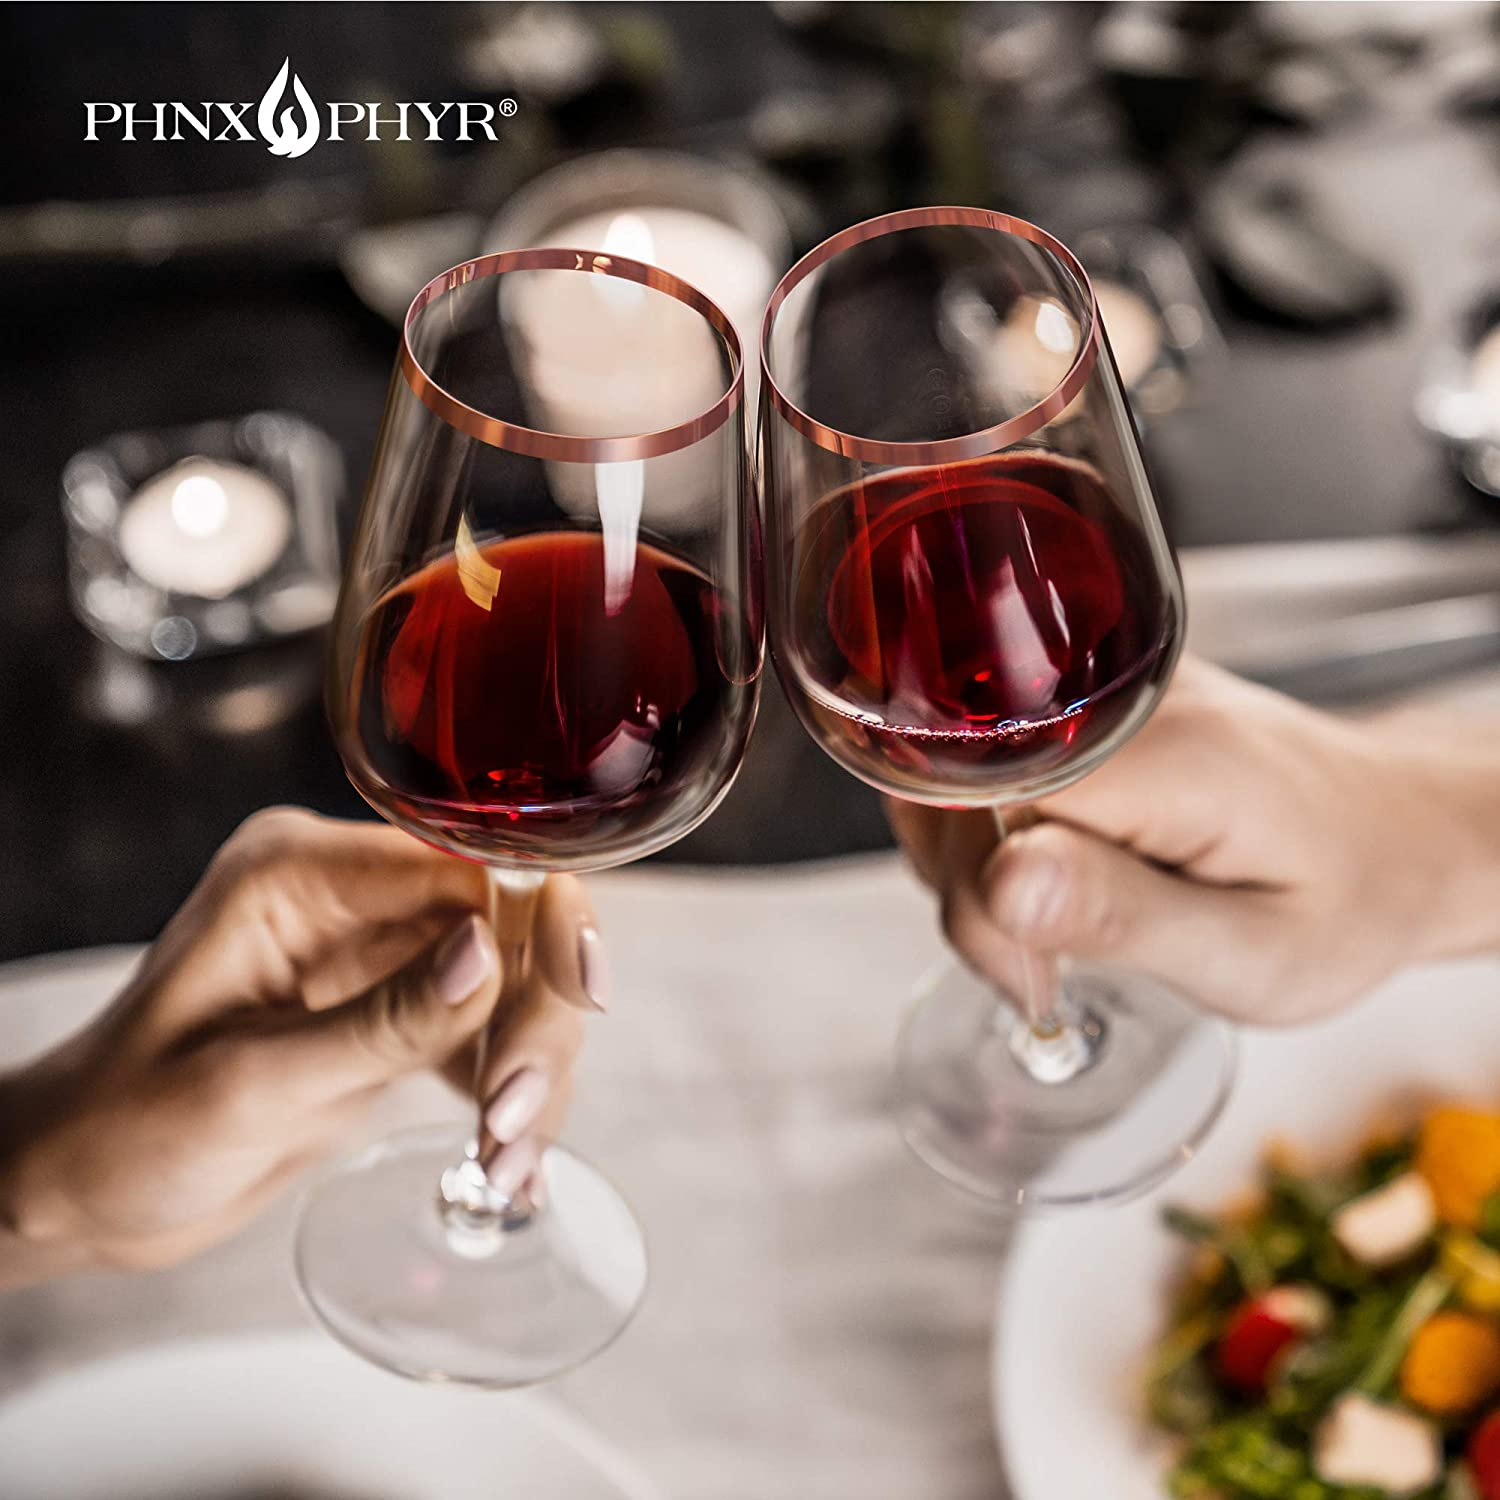 Stem wine glasses Hand Blown Crystal Rose Gold Wine Glasses set 2 Red wine glasses set of 2 Stem wine glass set Large white wine glass Stemmed wine glasses Gift packaging by Phnx Phyr